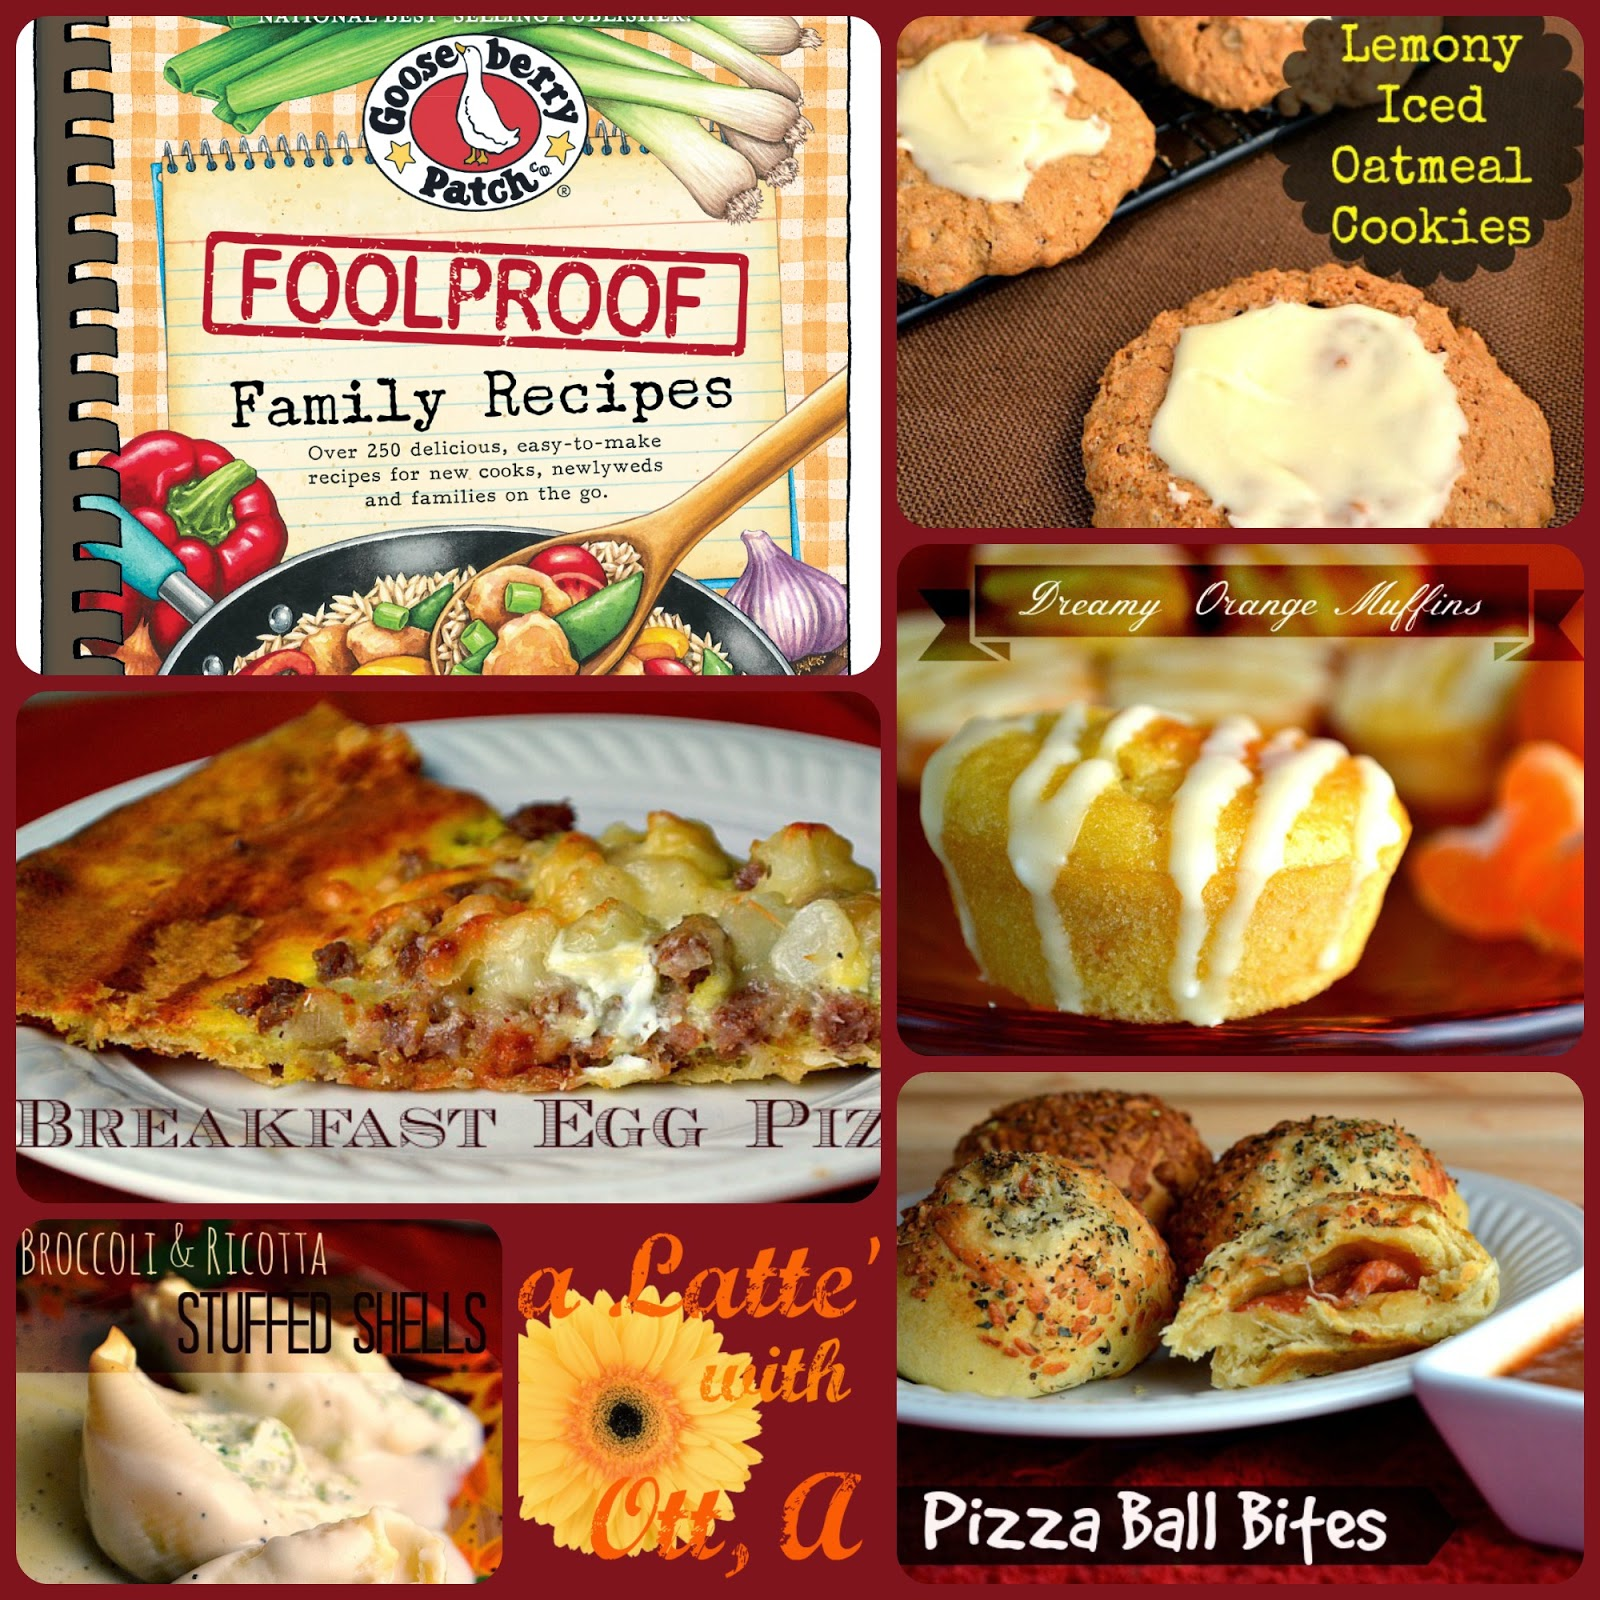 A latte with ott a foolproof family recipes cookbook giveaway in case you couldnt tell by all the cooking ive done out of this book i state it here this is my favorite gooseberry patch cookbook to date solutioingenieria Images